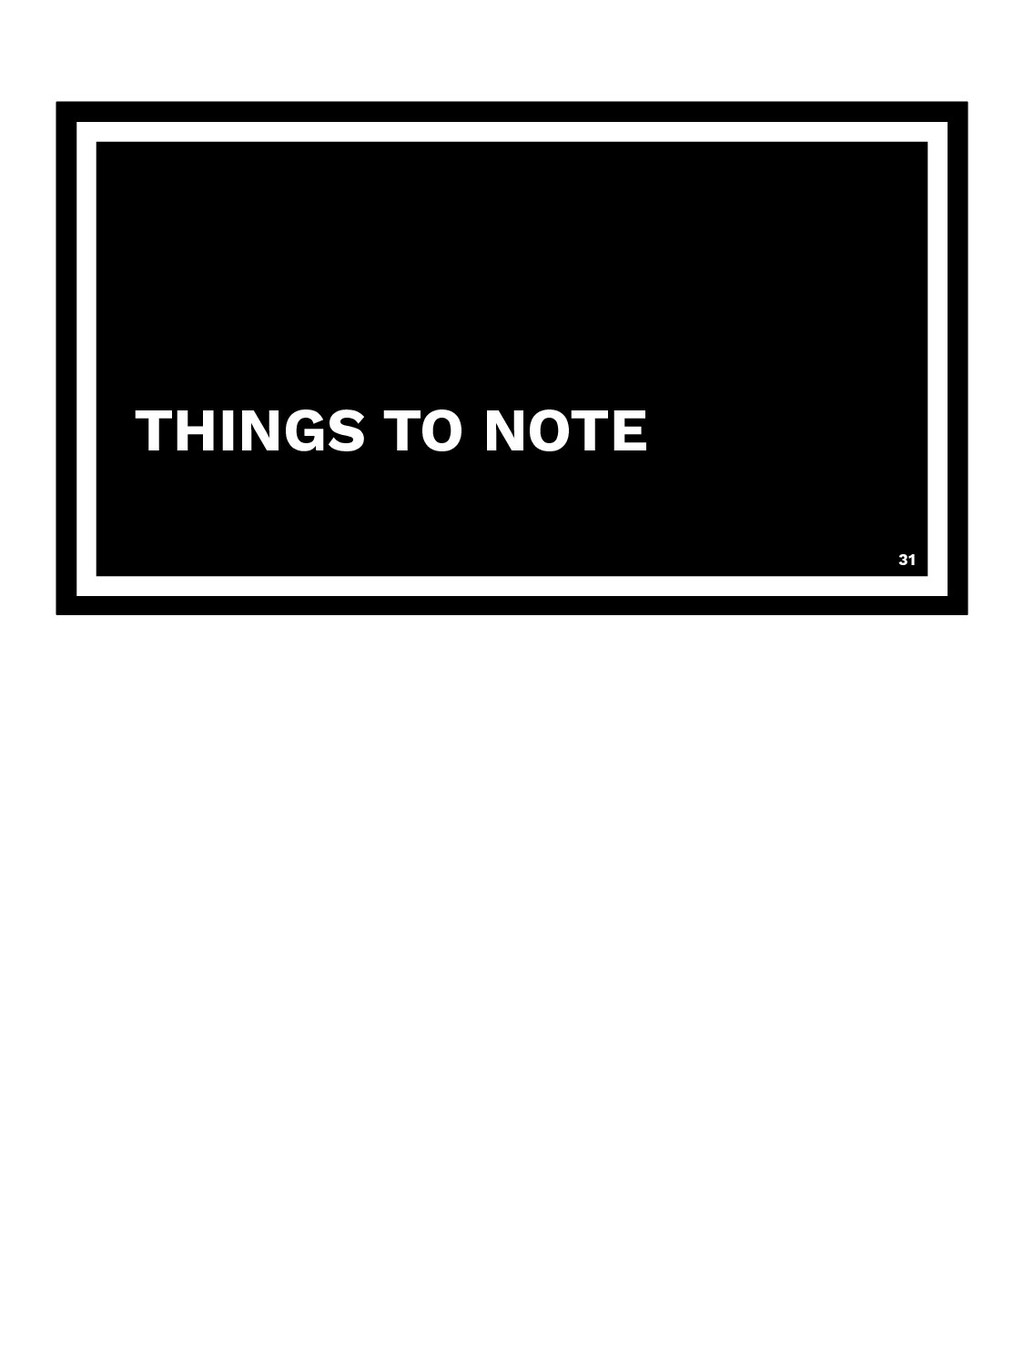 THINGS TO NOTE 31